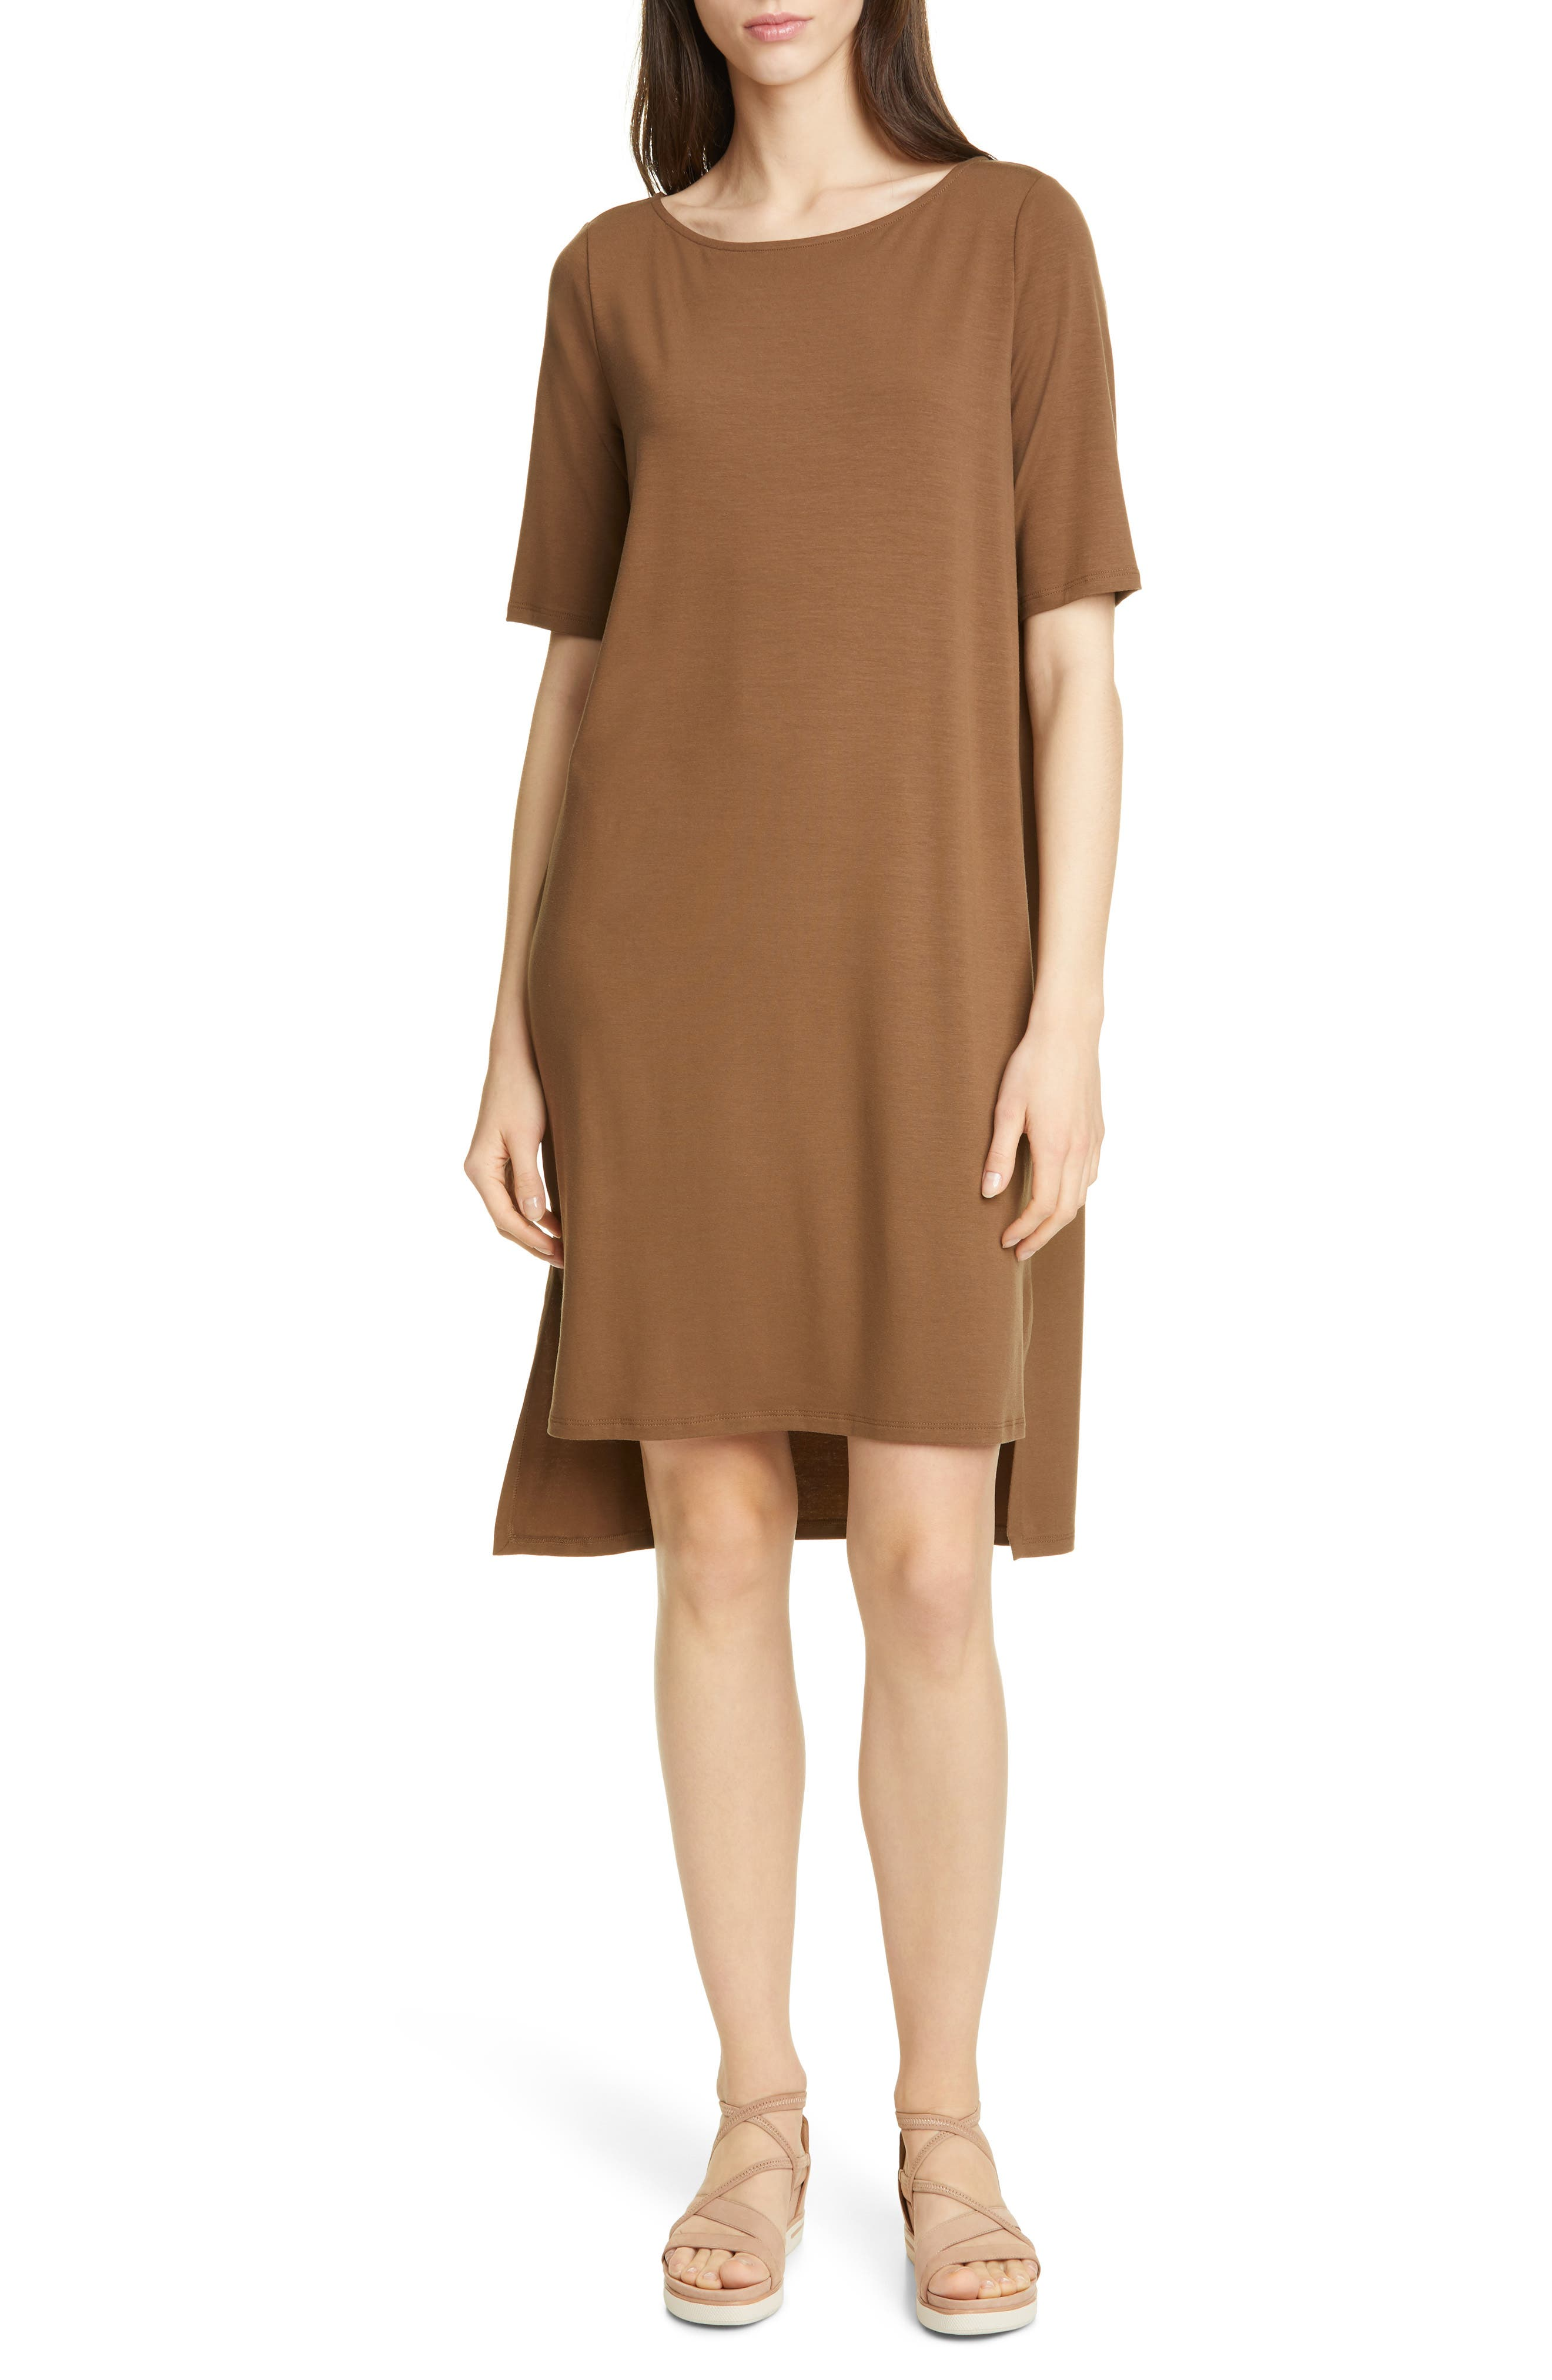 Petite Eileen Fisher High/low Shift Dress, Brown